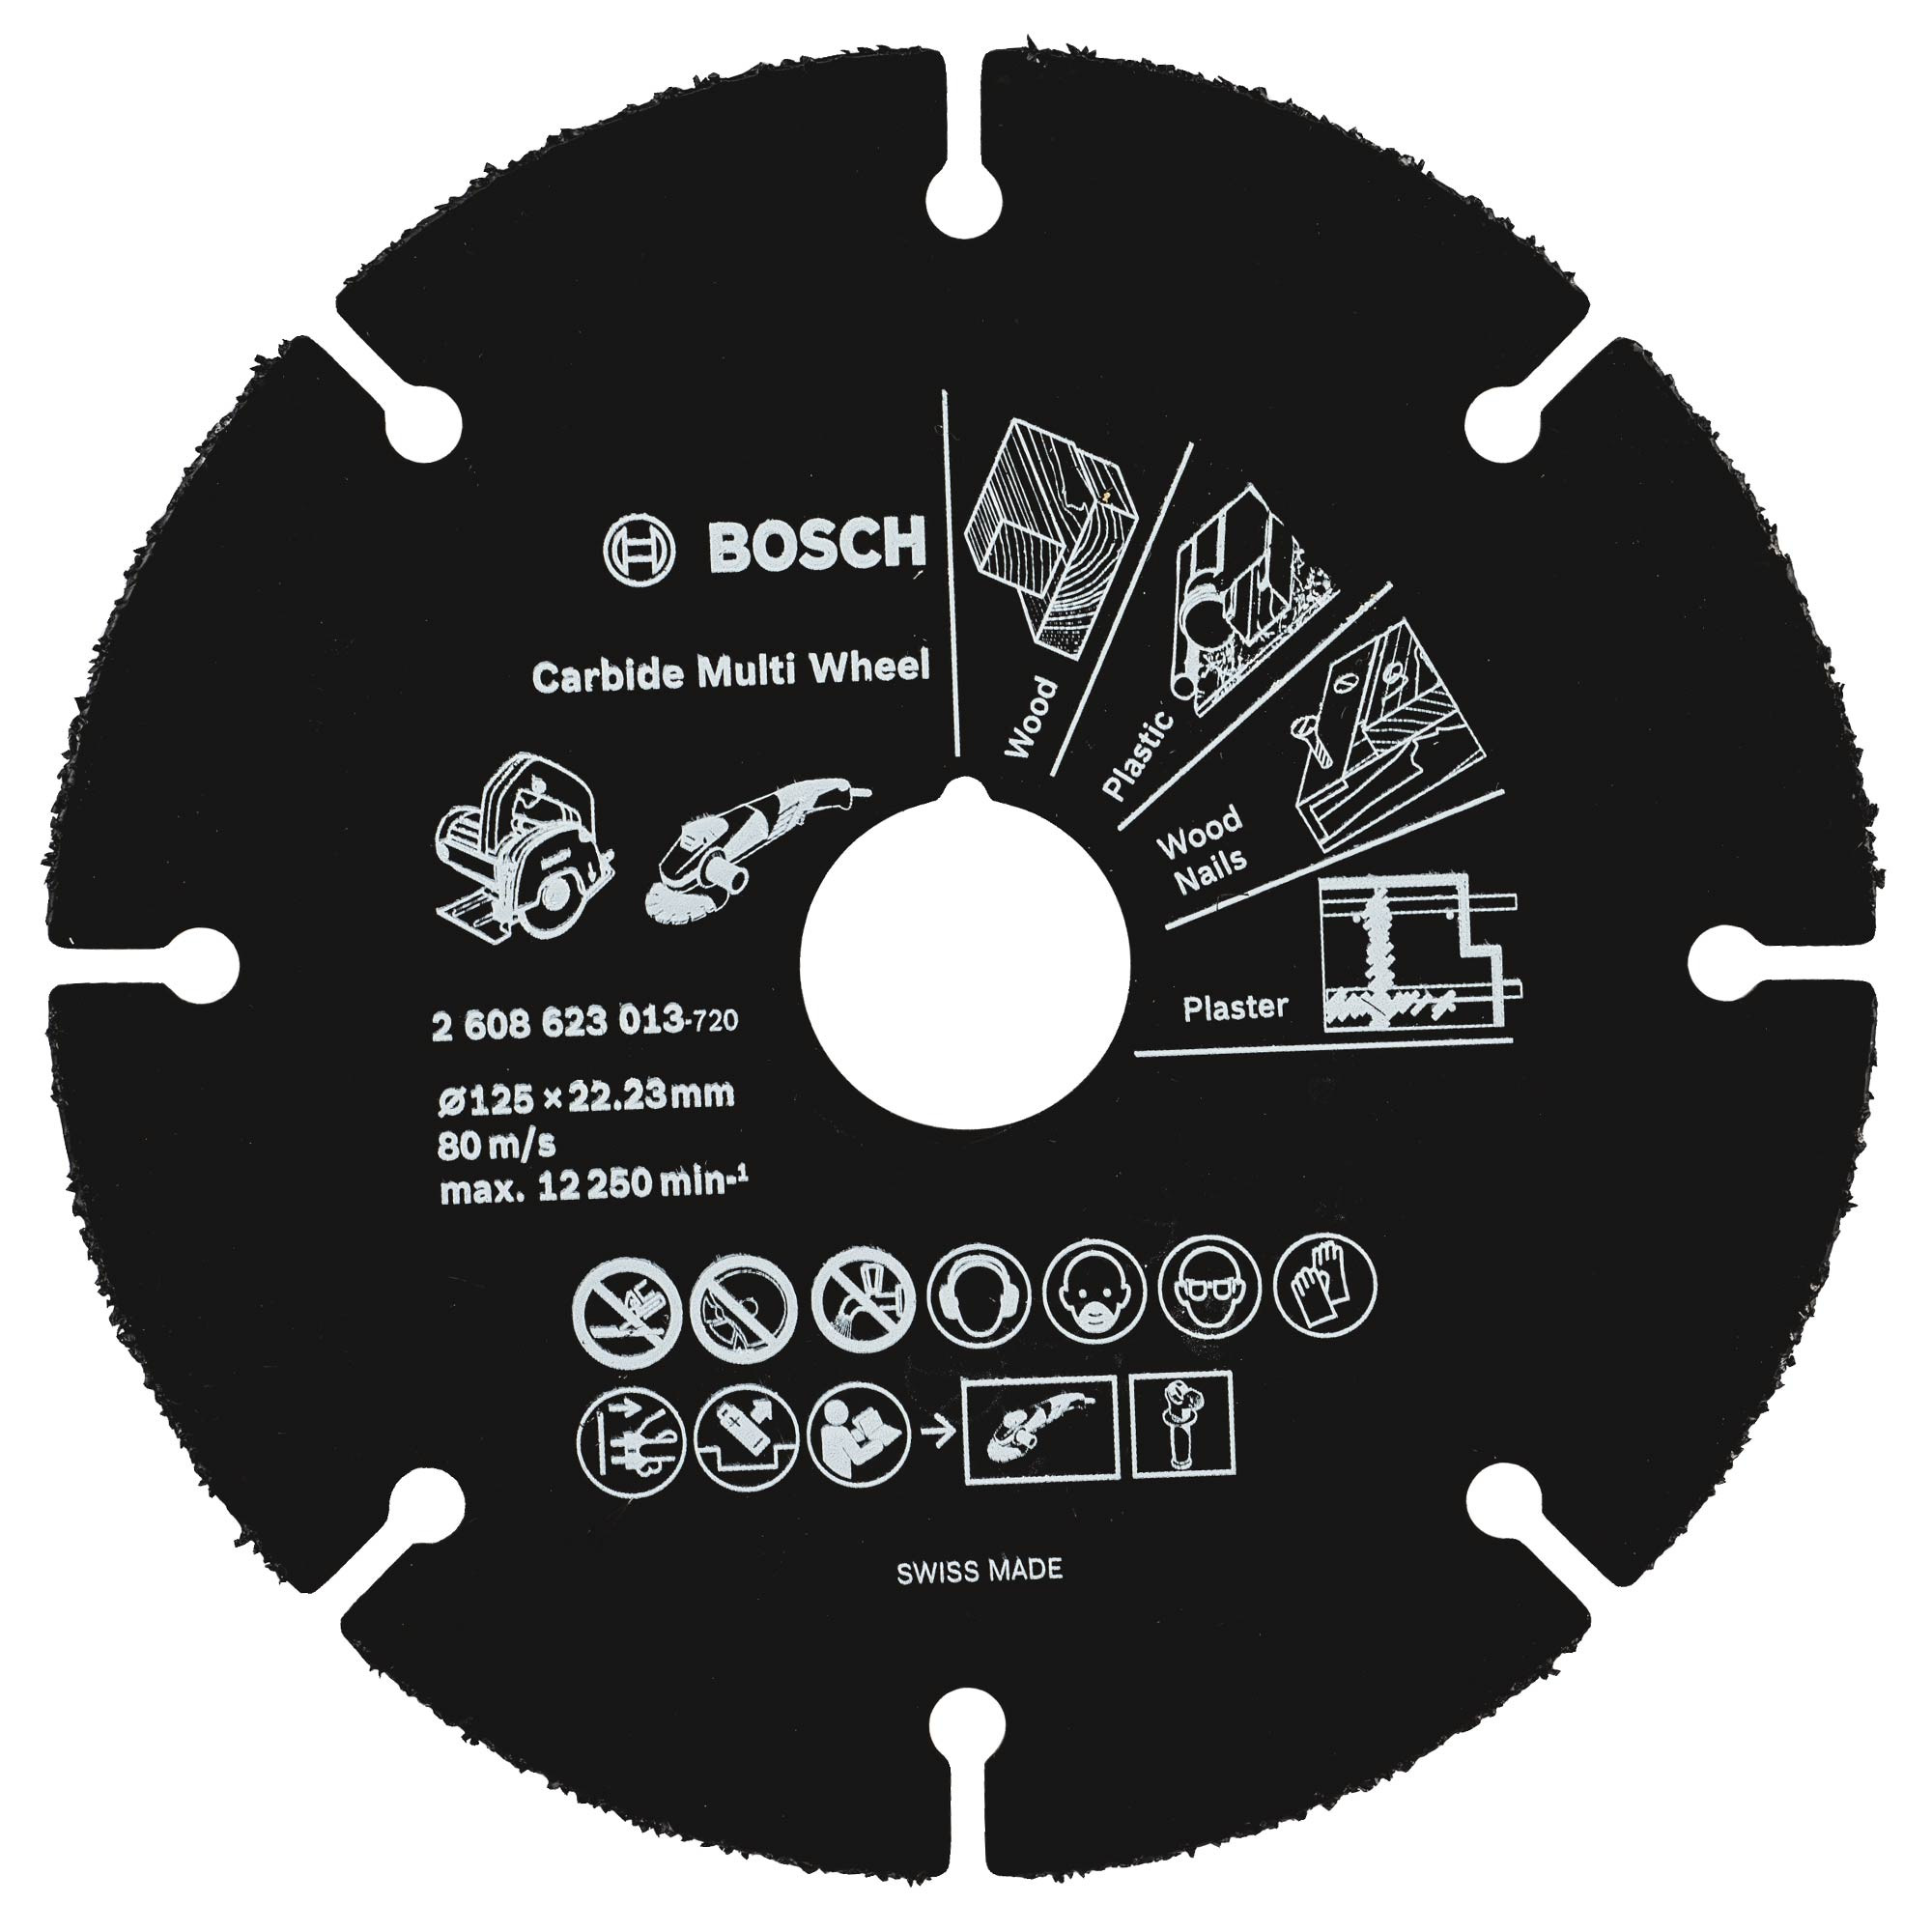 Bosch Accessoires Slijpschijf Carbide Multi Wheel , 115 - 2608623012